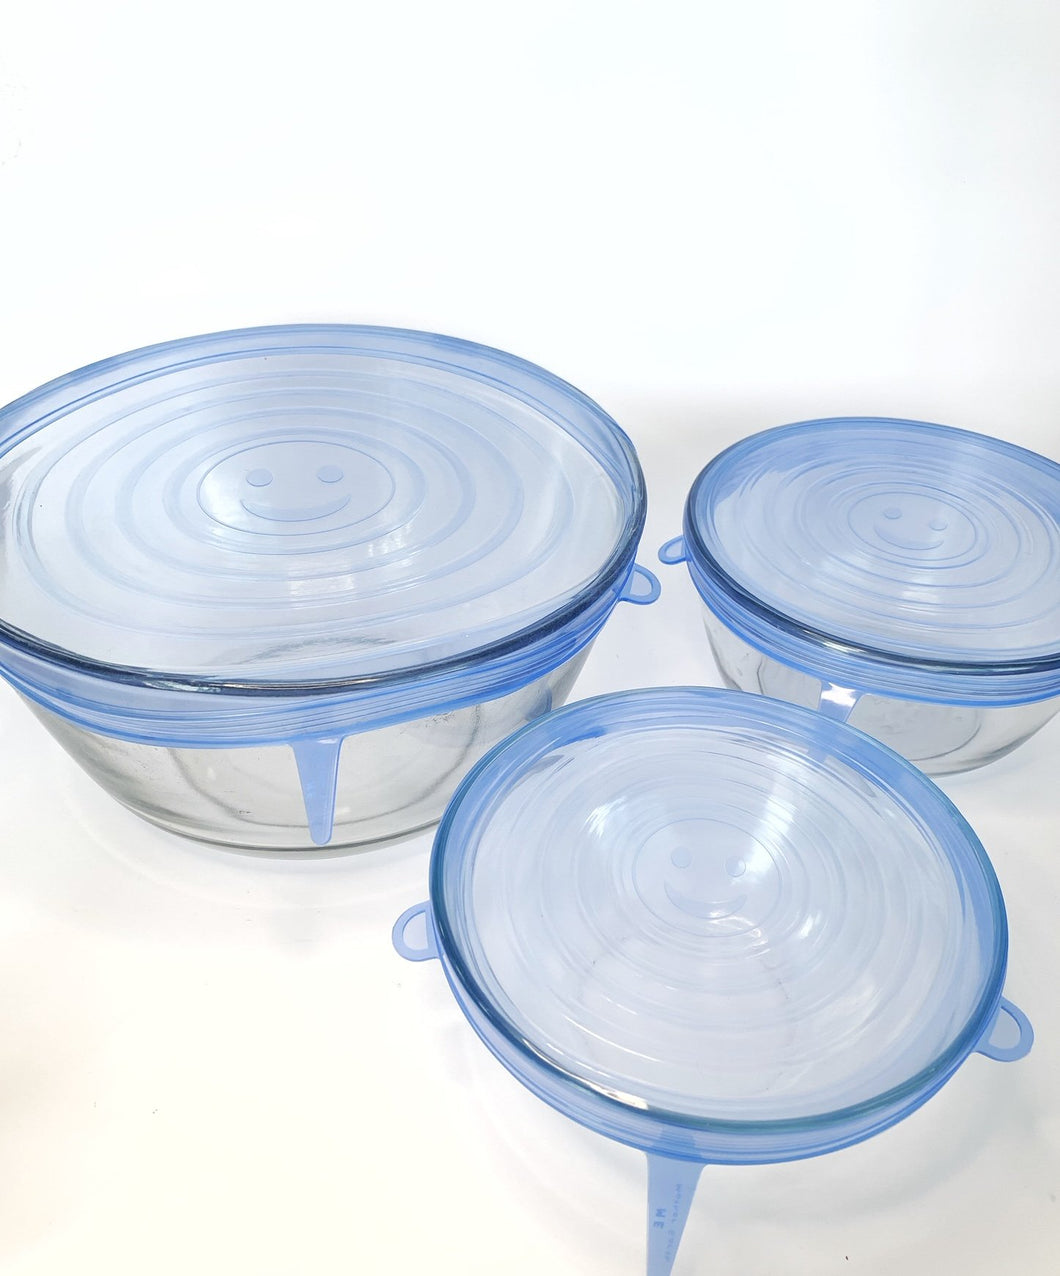 6 pack of sustainable silicone food storage covers in circle shapes and various sizes